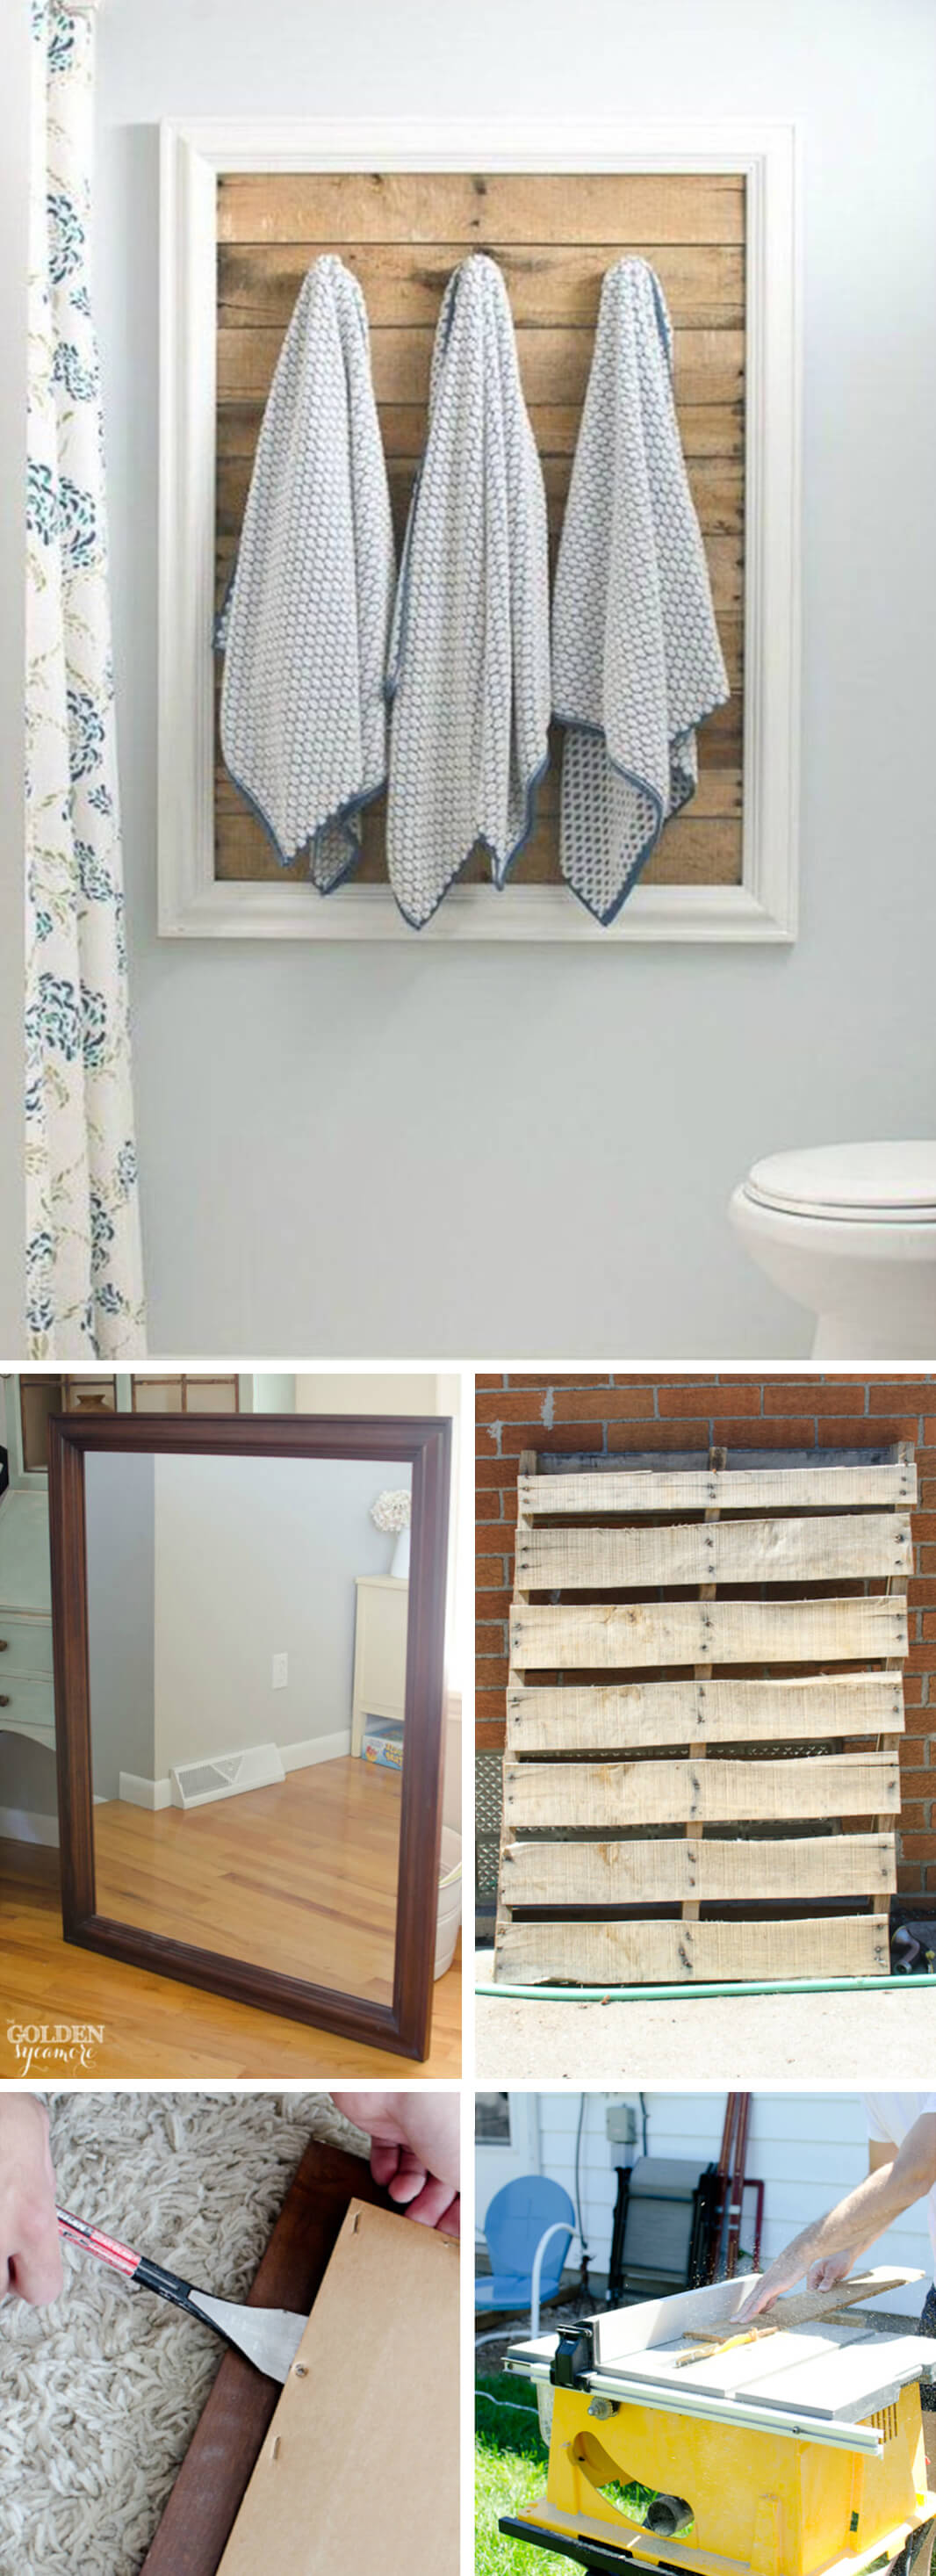 Wood Pallet Bathroom Towel Rack